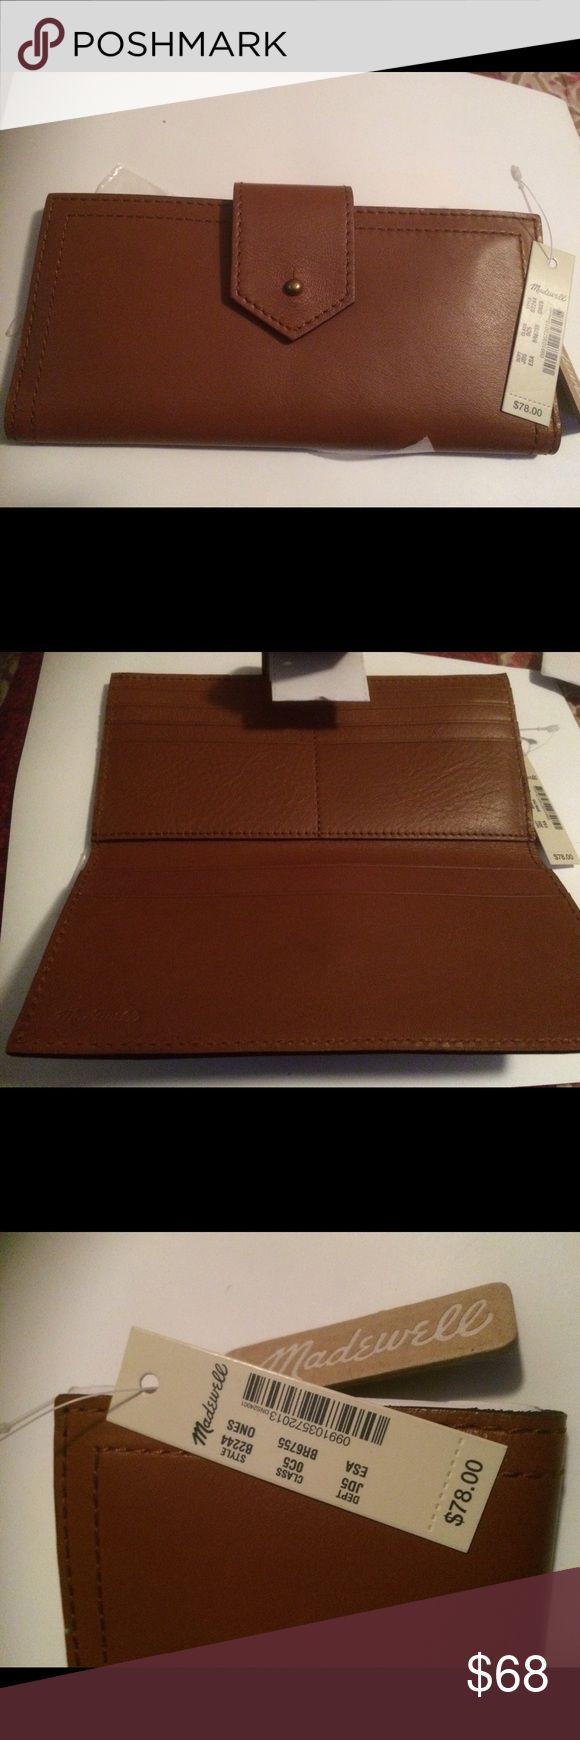 Madewell Brown Leather Wallet NWT Madewell Brown Leather Wallet New with  tags. Madewell Bags Wallets